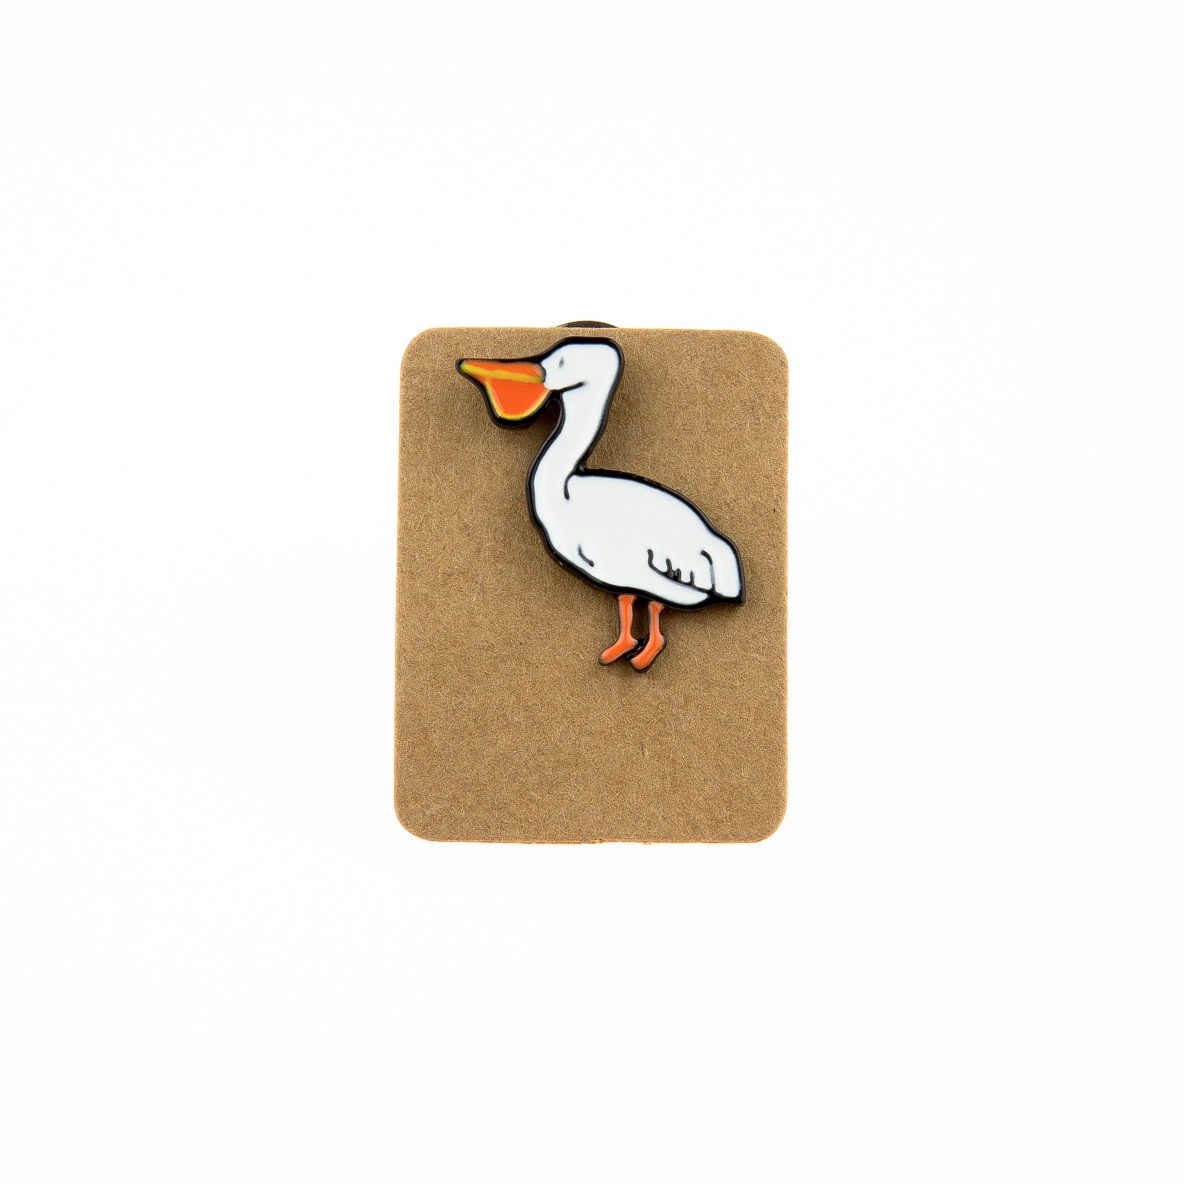 Metal Pelican Enamel Pin Badge